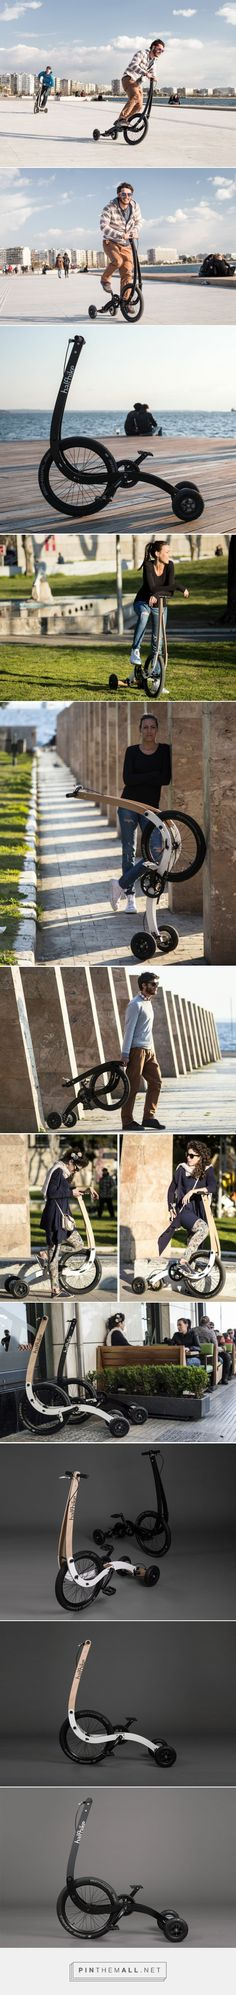 halfbike II redesigns bicycle to make a more intuitive, full body ride - created via http://pinthemall.net